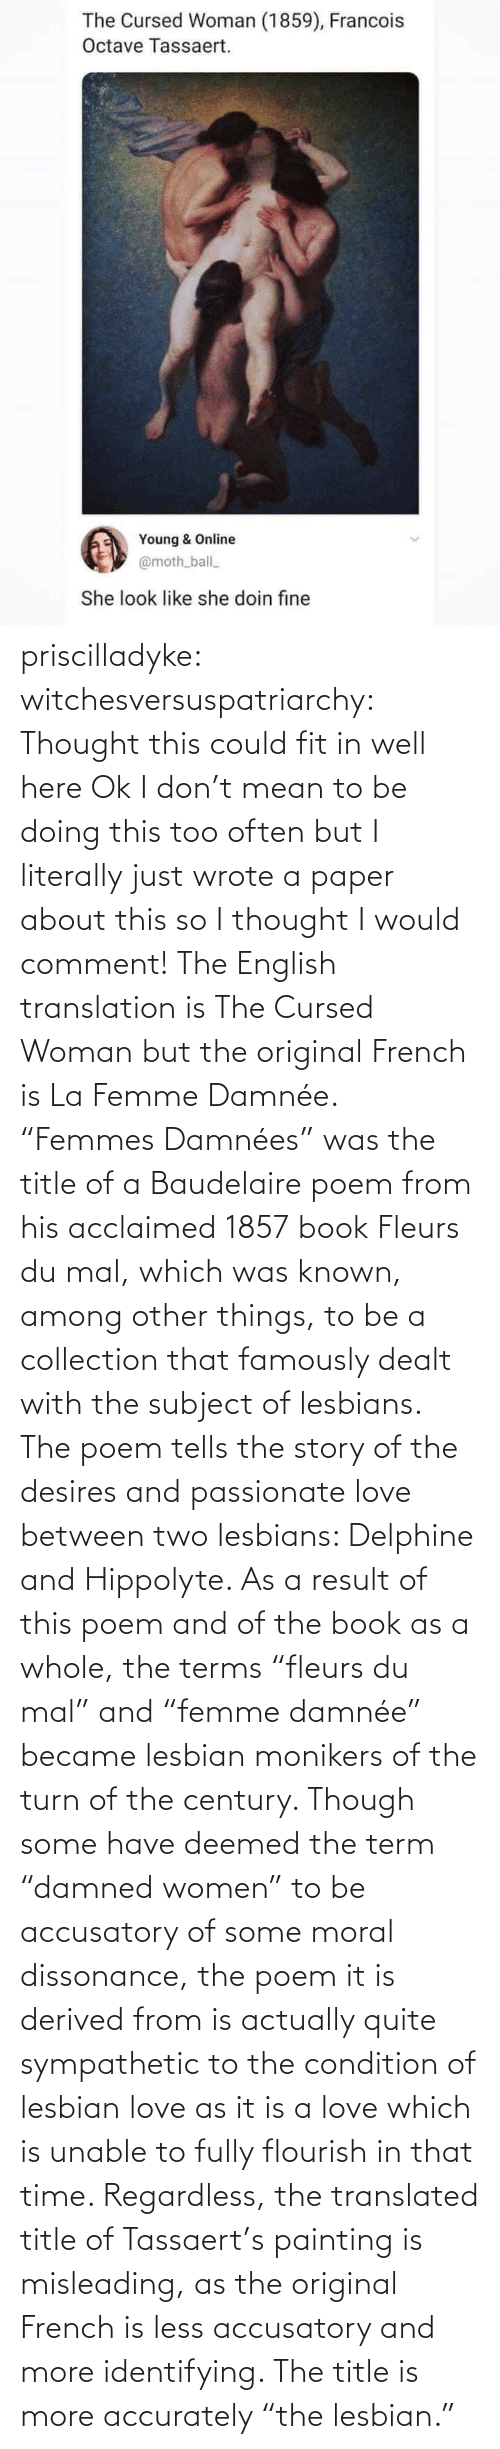 "woman: priscilladyke:  witchesversuspatriarchy: Thought this could fit in well here   Ok I don't mean to be doing this too often but I literally just wrote a paper about this so I thought I would comment! The English translation is The Cursed Woman but the original French is La Femme Damnée. ""Femmes Damnées"" was the title of a Baudelaire poem from his acclaimed 1857 book Fleurs du mal, which was known, among other things, to be a collection that famously dealt with the subject of lesbians. The poem tells the story of the desires and passionate love between two lesbians:  Delphine and Hippolyte. As a result of this poem and of the book as a whole, the terms ""fleurs du mal"" and ""femme damnée"" became lesbian monikers of the turn of the century. Though some have deemed the term ""damned women"" to be accusatory of some moral dissonance, the poem it is derived from is actually quite sympathetic to the condition of lesbian love as it is a love which is unable to fully flourish in that time. Regardless, the translated title of Tassaert's painting is misleading, as the original French is less accusatory and more identifying. The title is more accurately ""the lesbian."""